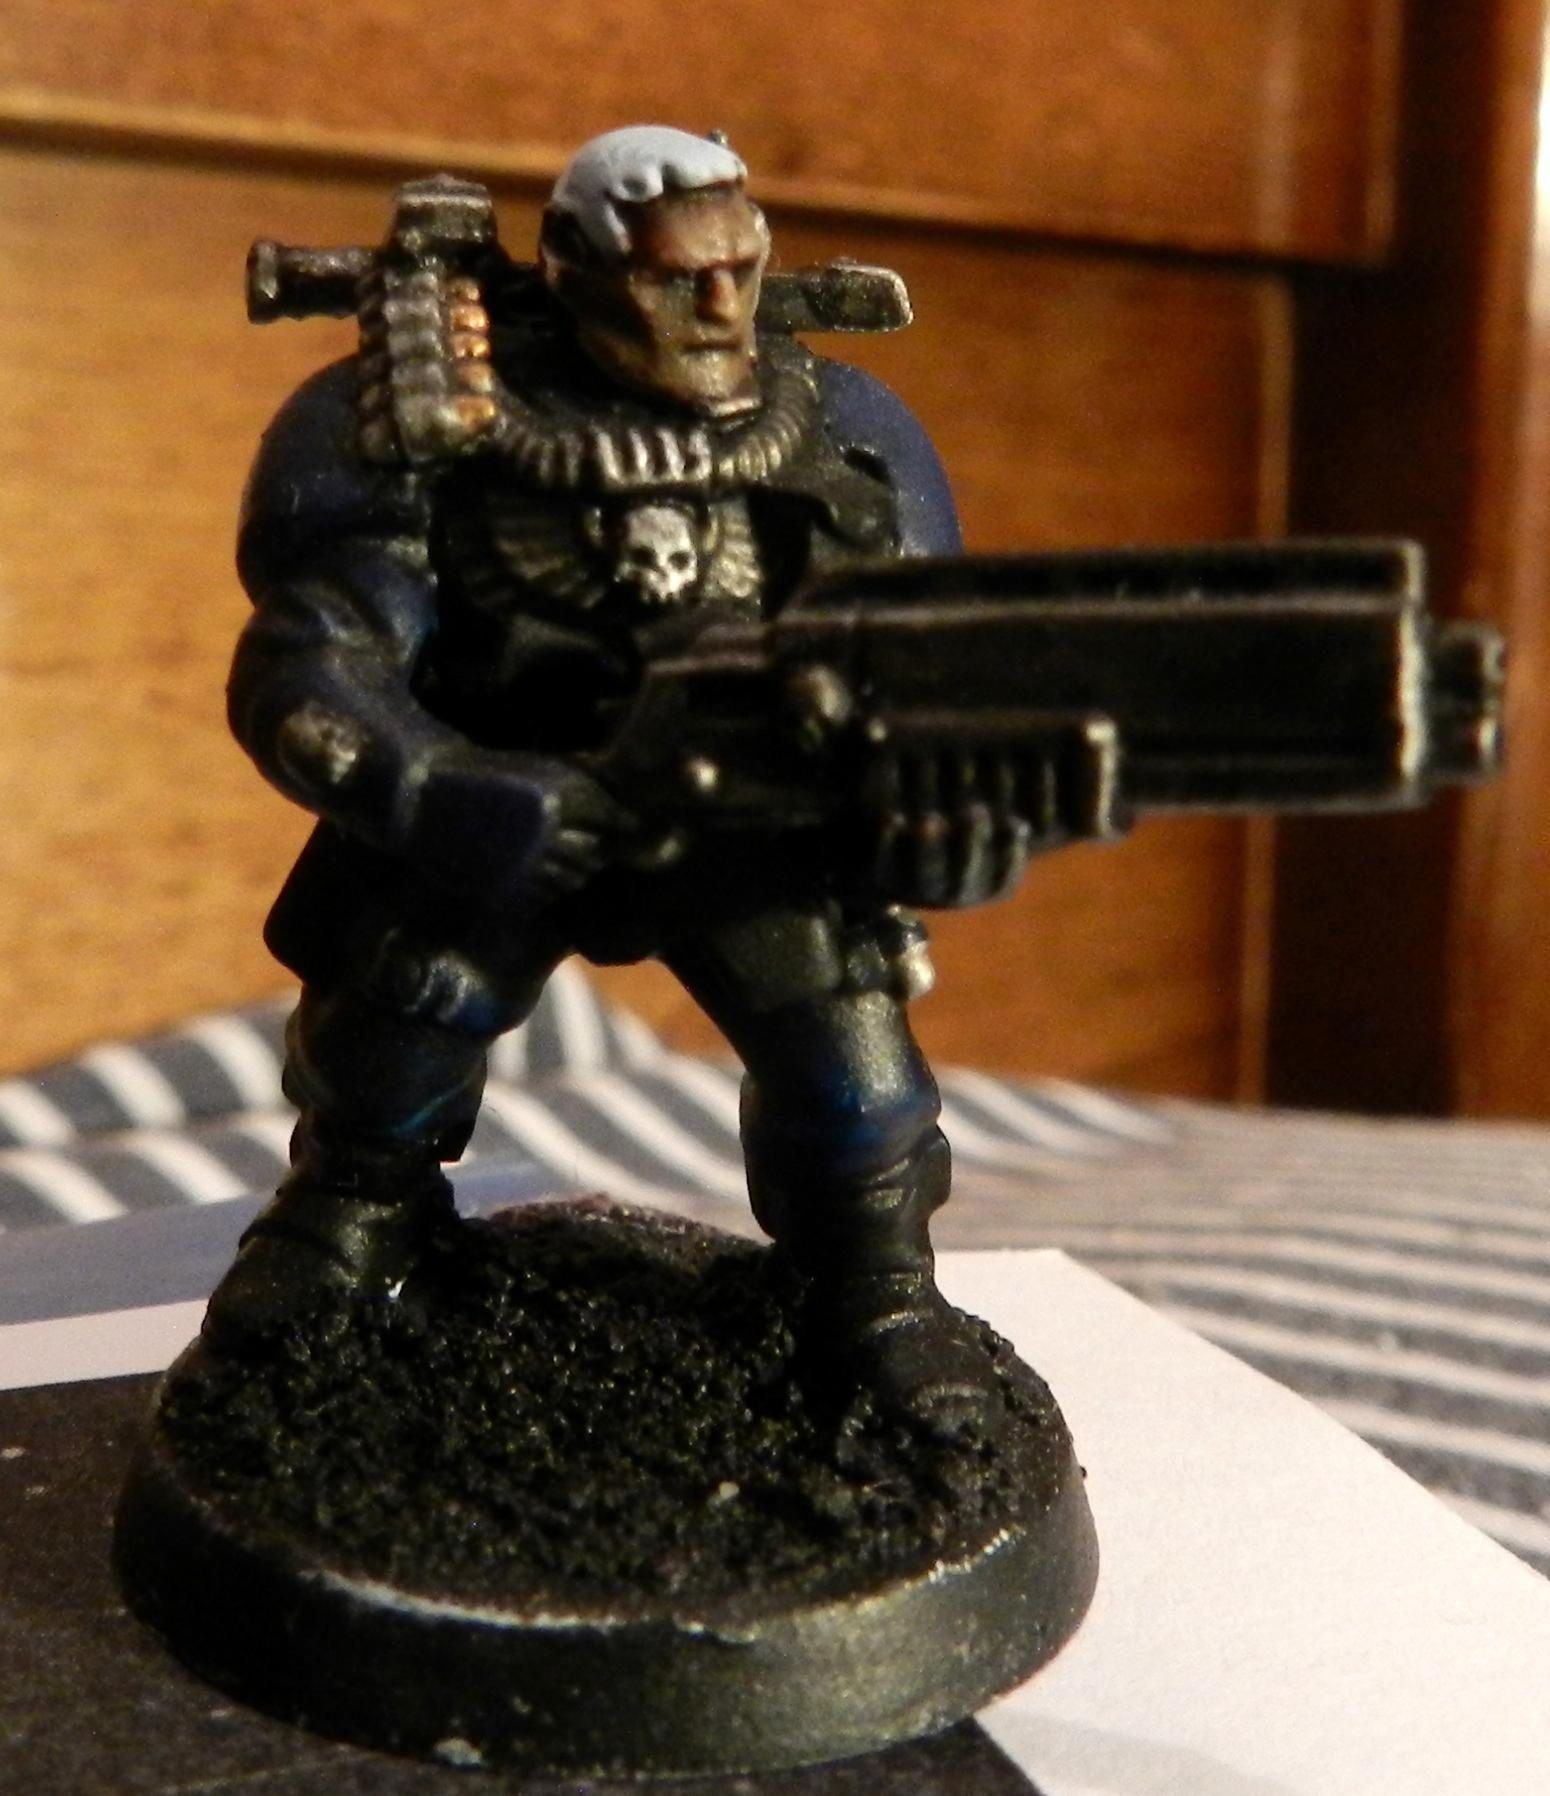 Adeptus Arbites, Cadians, Conversion, Count As, Gears Of War, Grenadier, Grenadiers, Guardsmen, Imperial Guard, Scouts, Shotgun, Veteran, Warhammer 40,000, Work In Progress